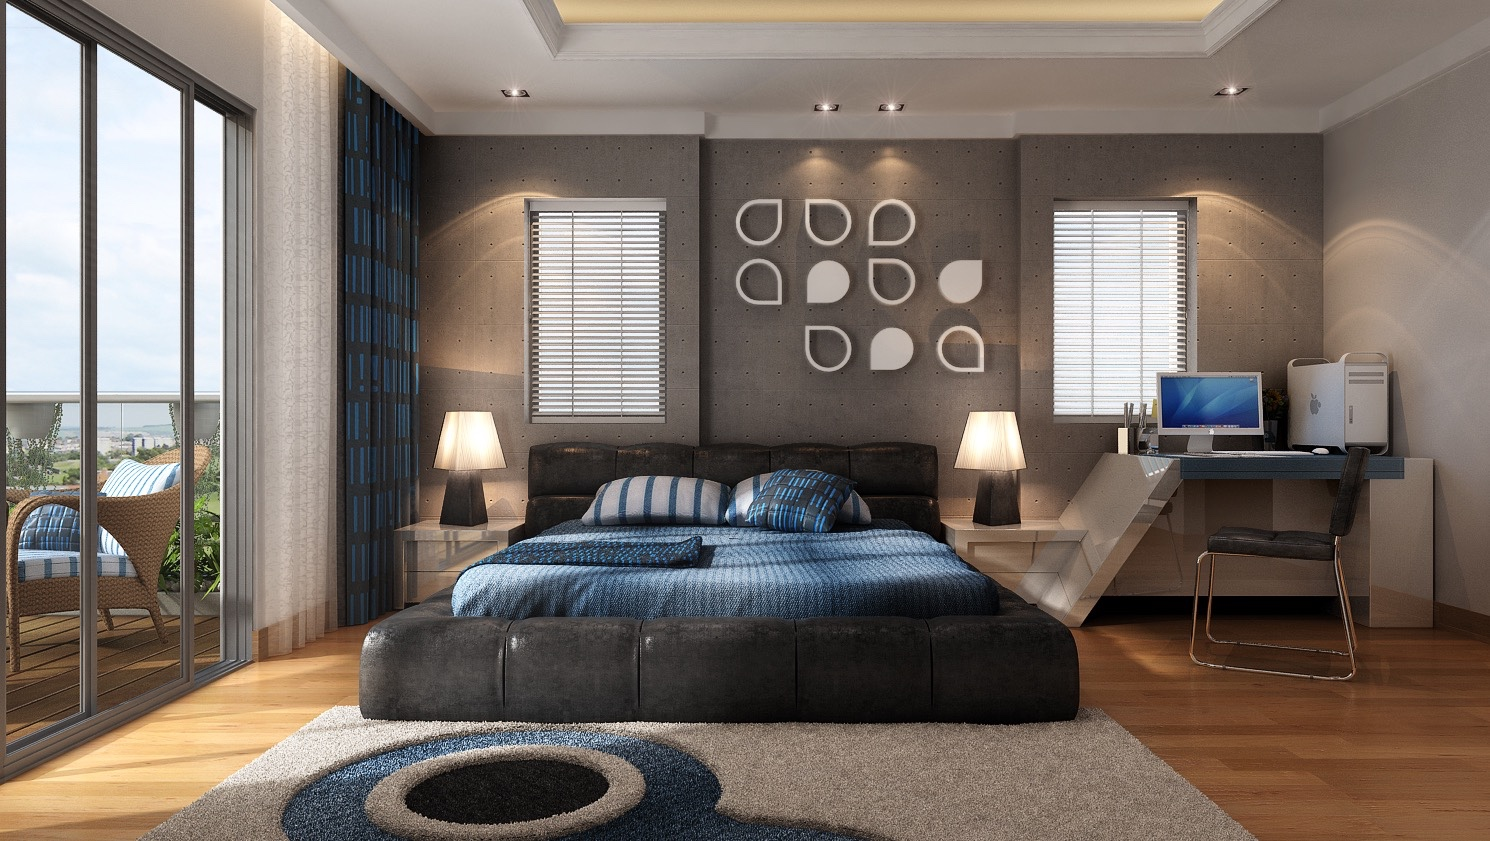 21 cool bedrooms for clean and simple design inspiration - Cool Home Design